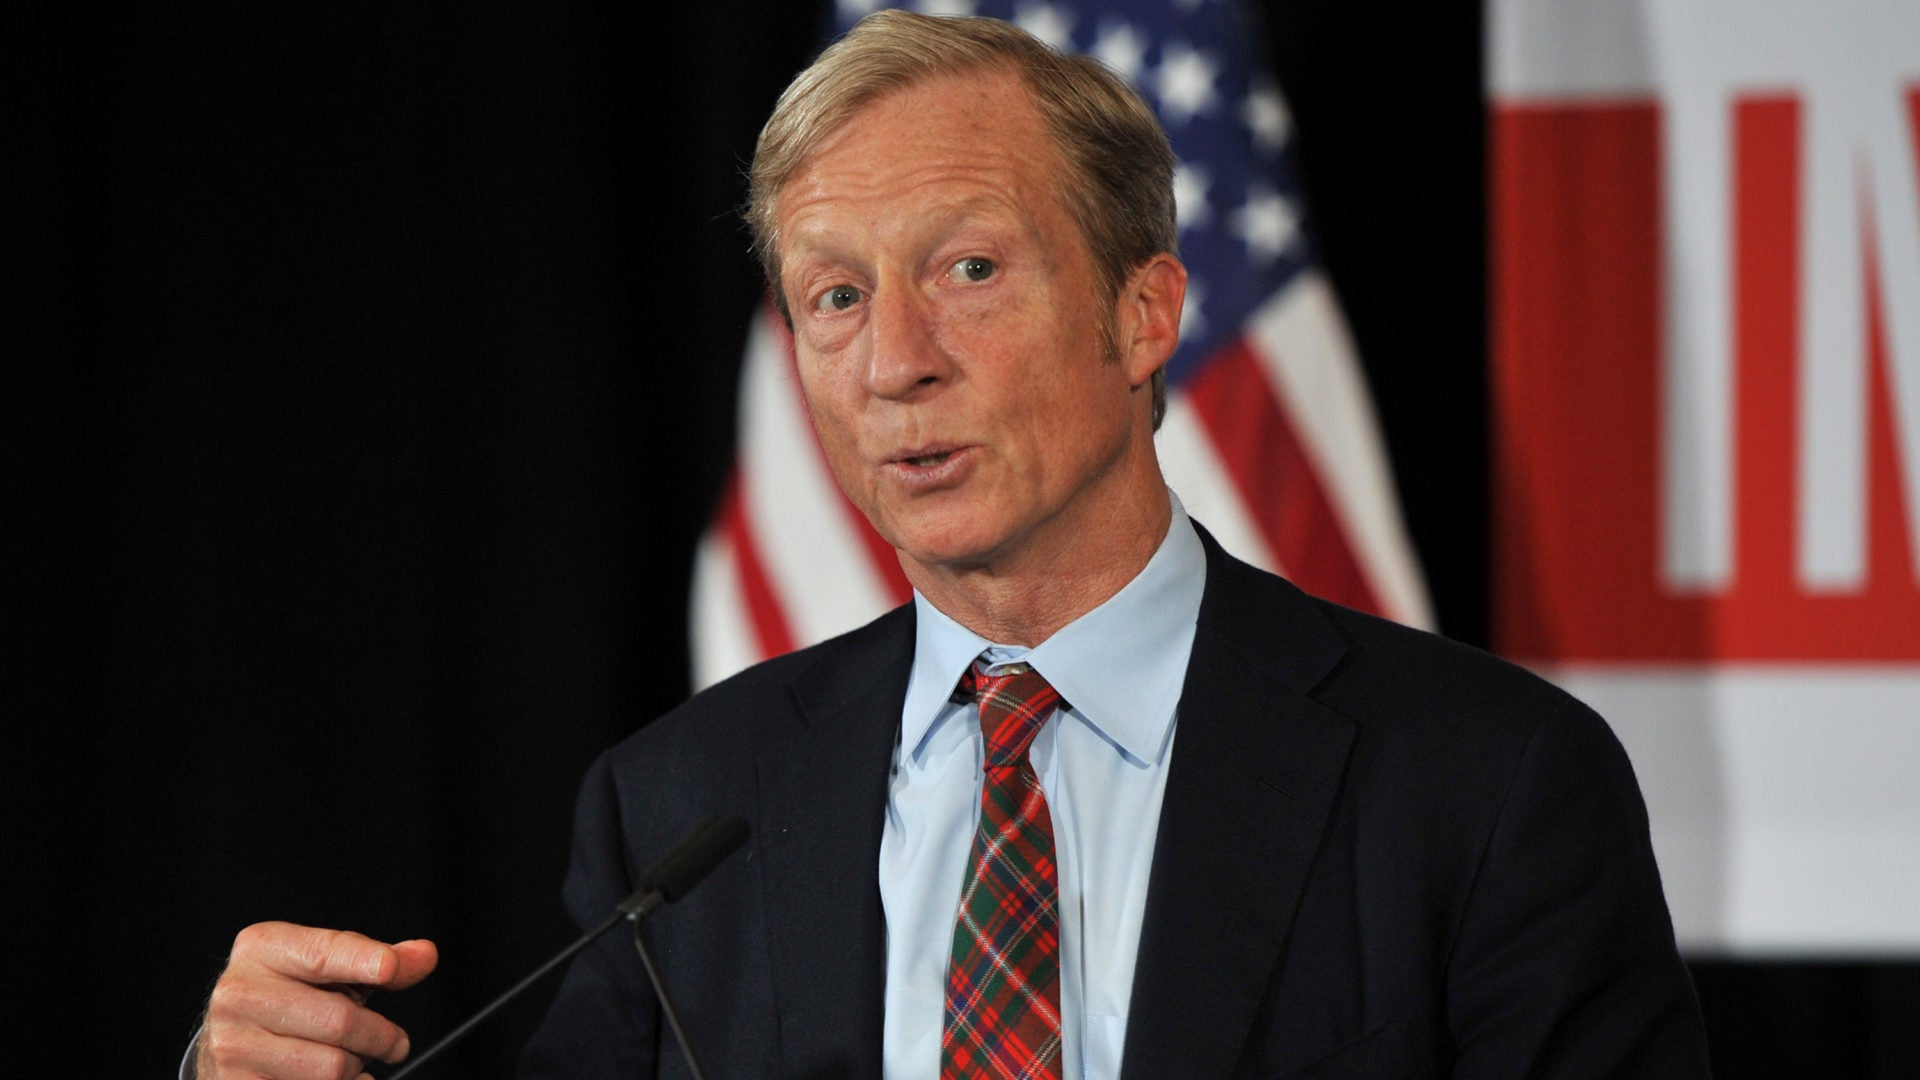 Billionaire Tom Steyer Said He Wouldn't Run For President, Now He's The 24th Democratic Candidate